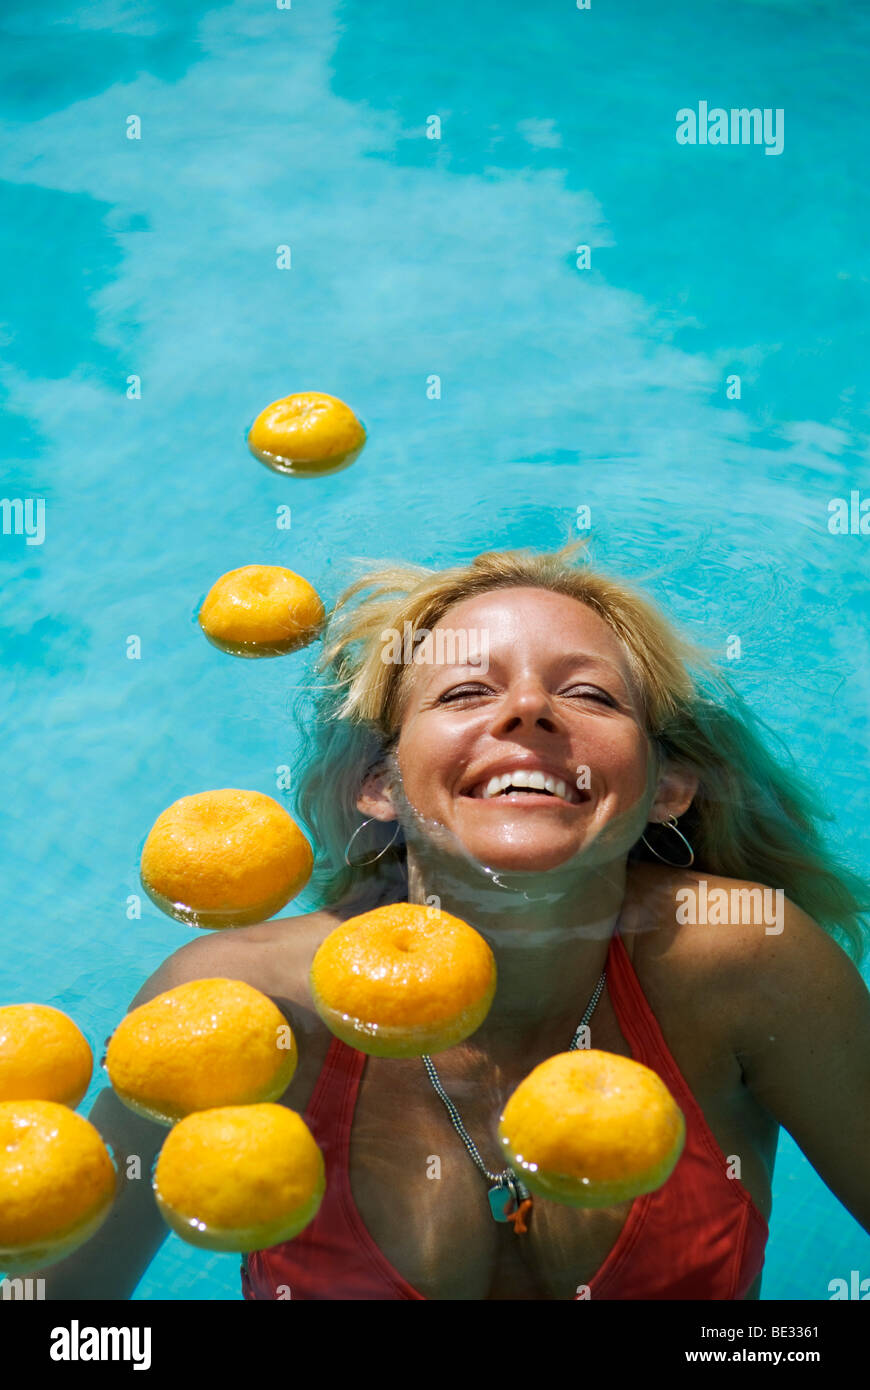 beautiful laughing young woman with long blond hair semi submerged in swimming pool with floating oranges - Stock Image